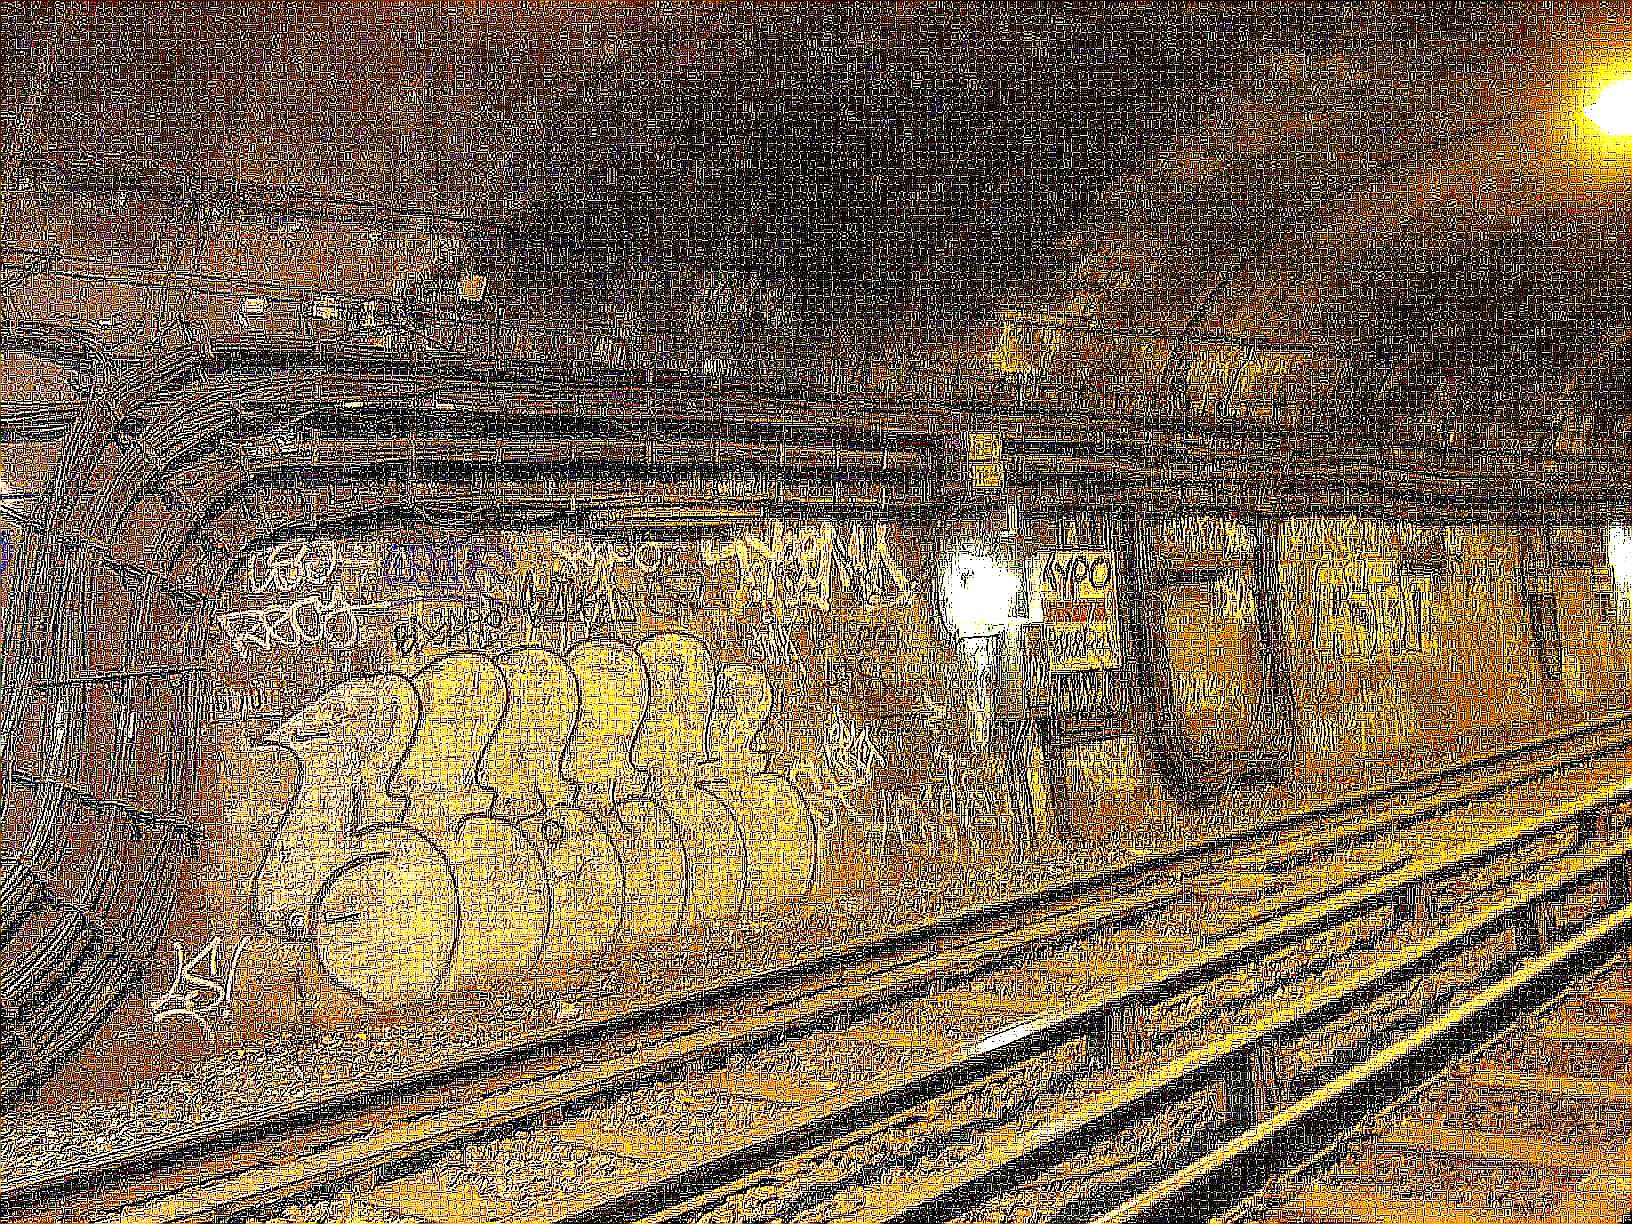 Tunnel_metro_paris